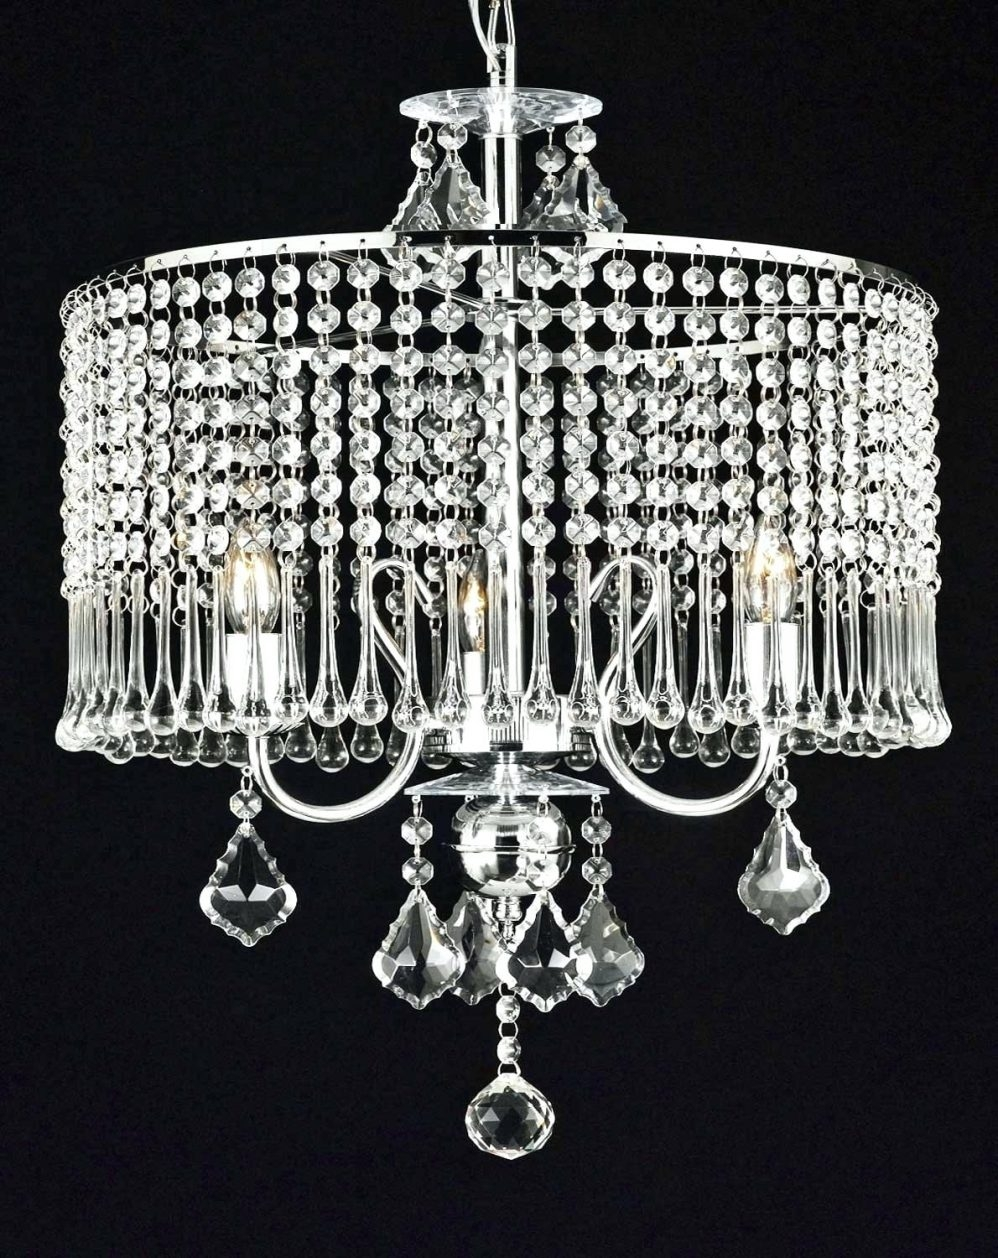 Chandeliers San Diego Diy Lotus Chandelier Pp Pendant Lampshade Throughout Lampshade Chandeliers (Image 8 of 25)